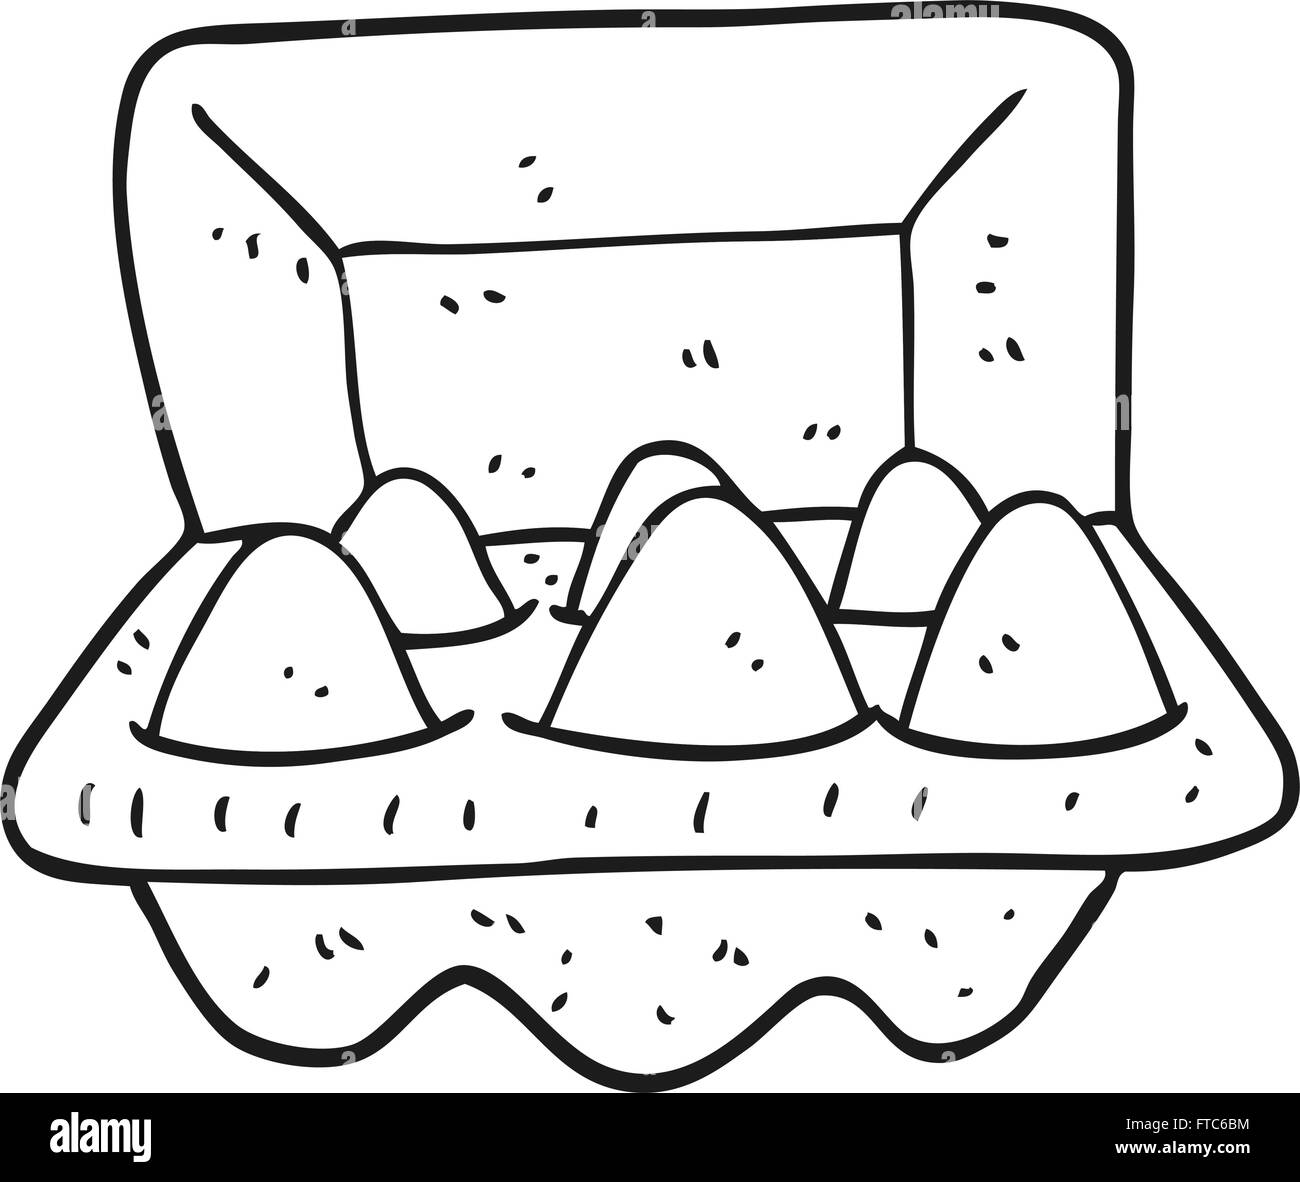 freehand drawn black and white cartoon eggs in box stock vector art